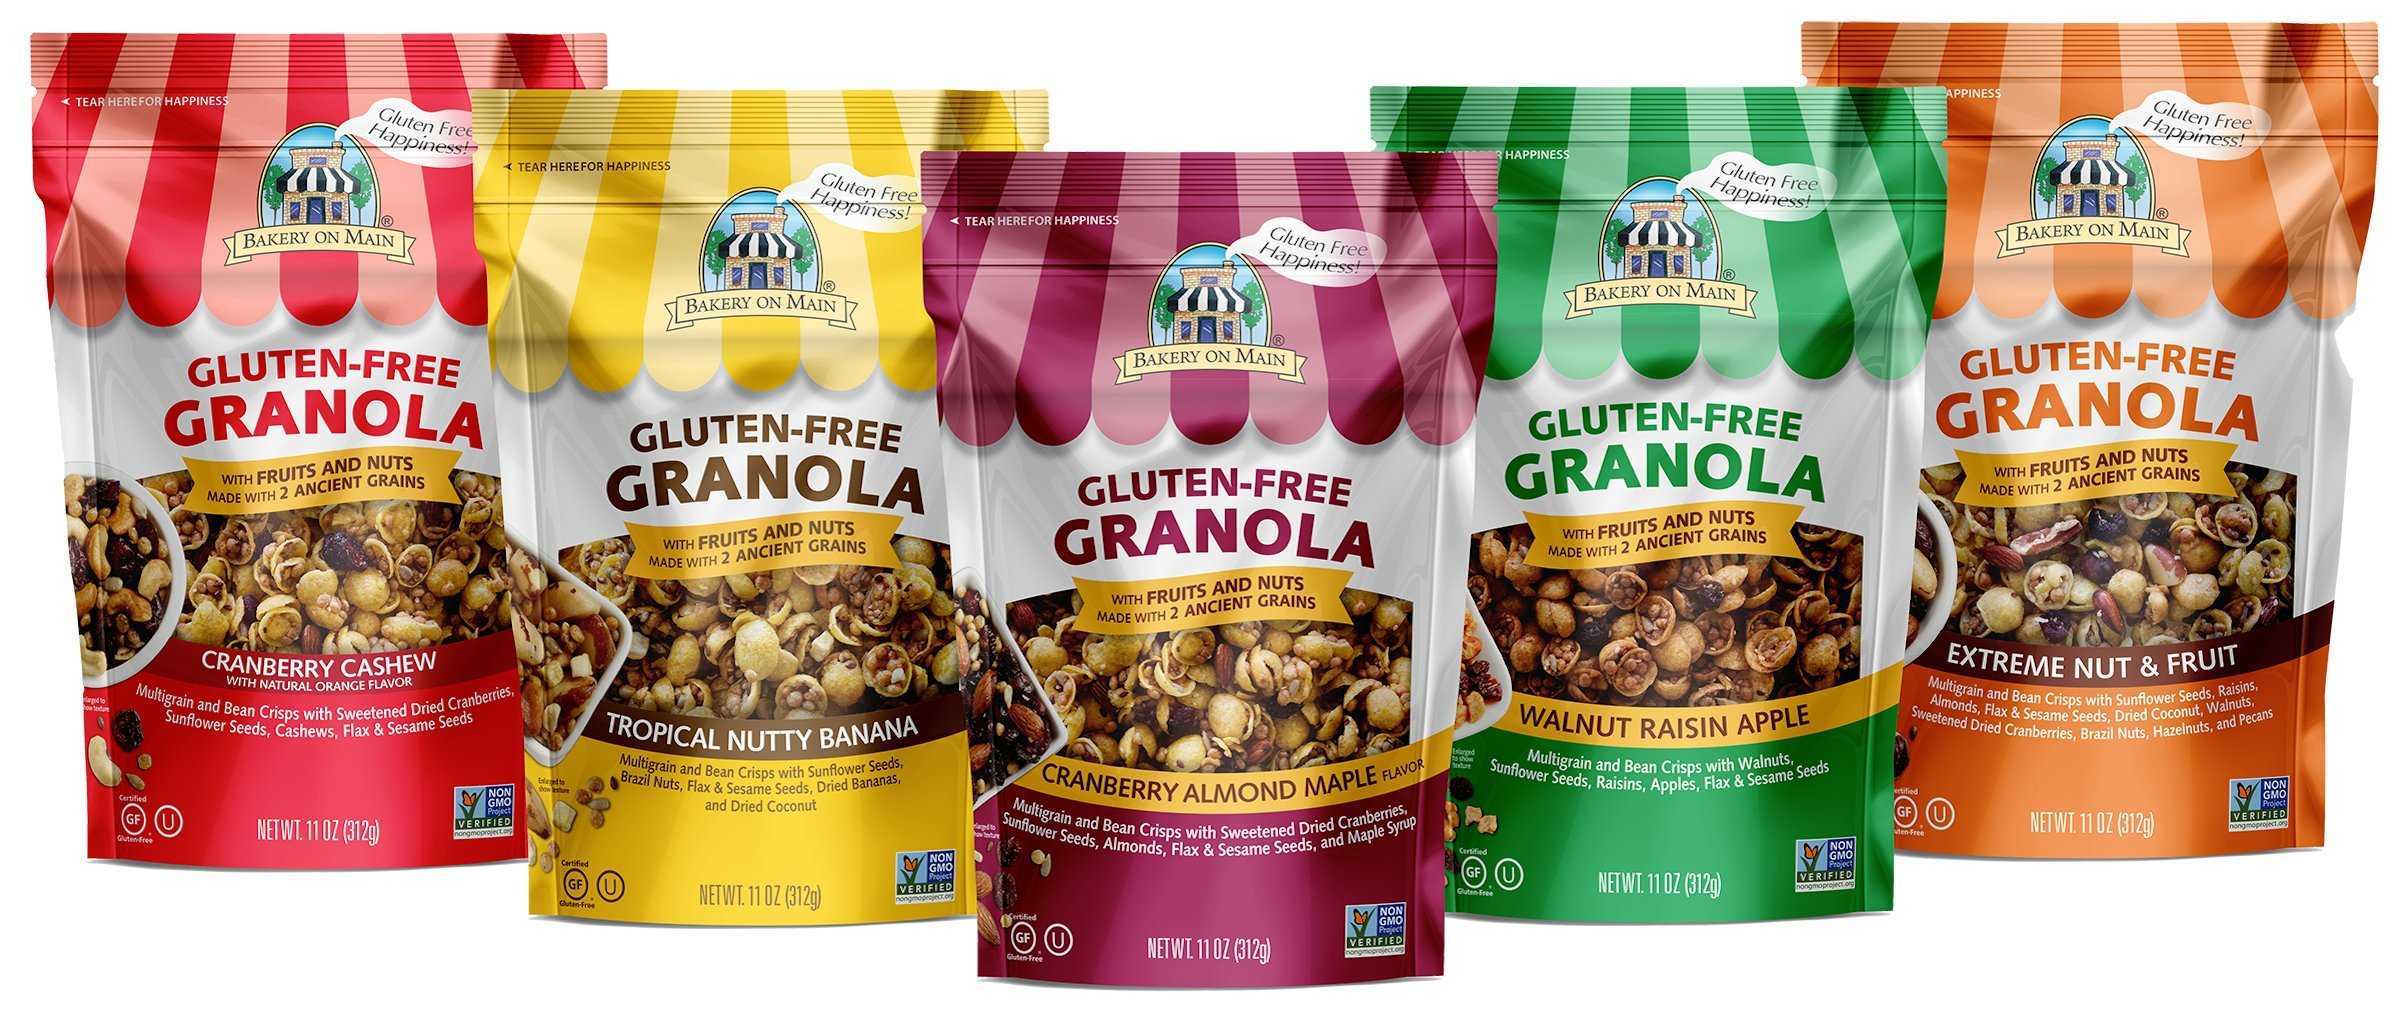 Bakery On Main Gluten-Free, Non GMO Granola, Variety Pack, 11 Ounce, 6 Count by Bakery On Main